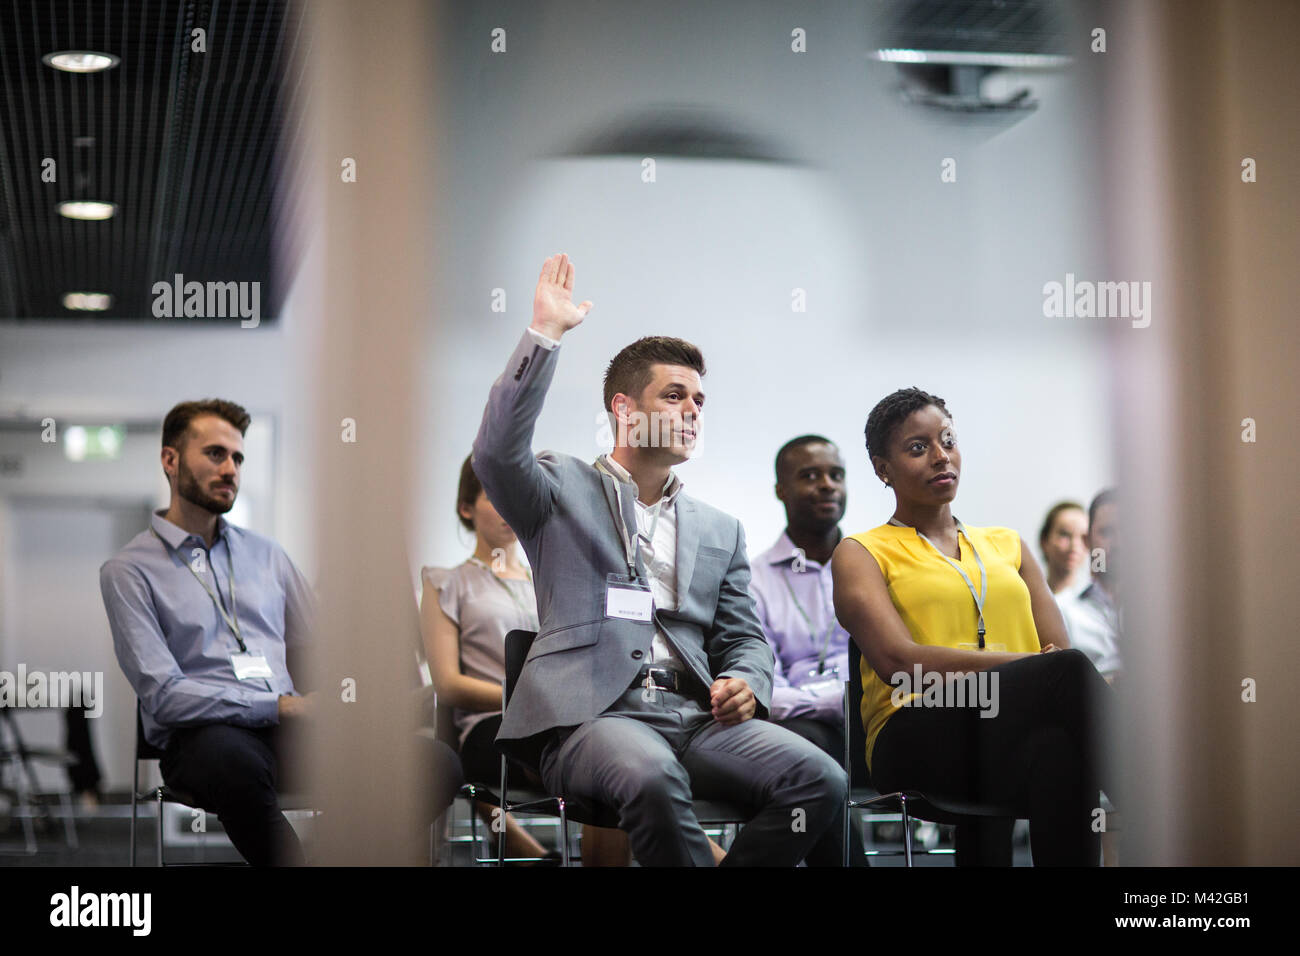 Businessman asking a question at a conference - Stock Image